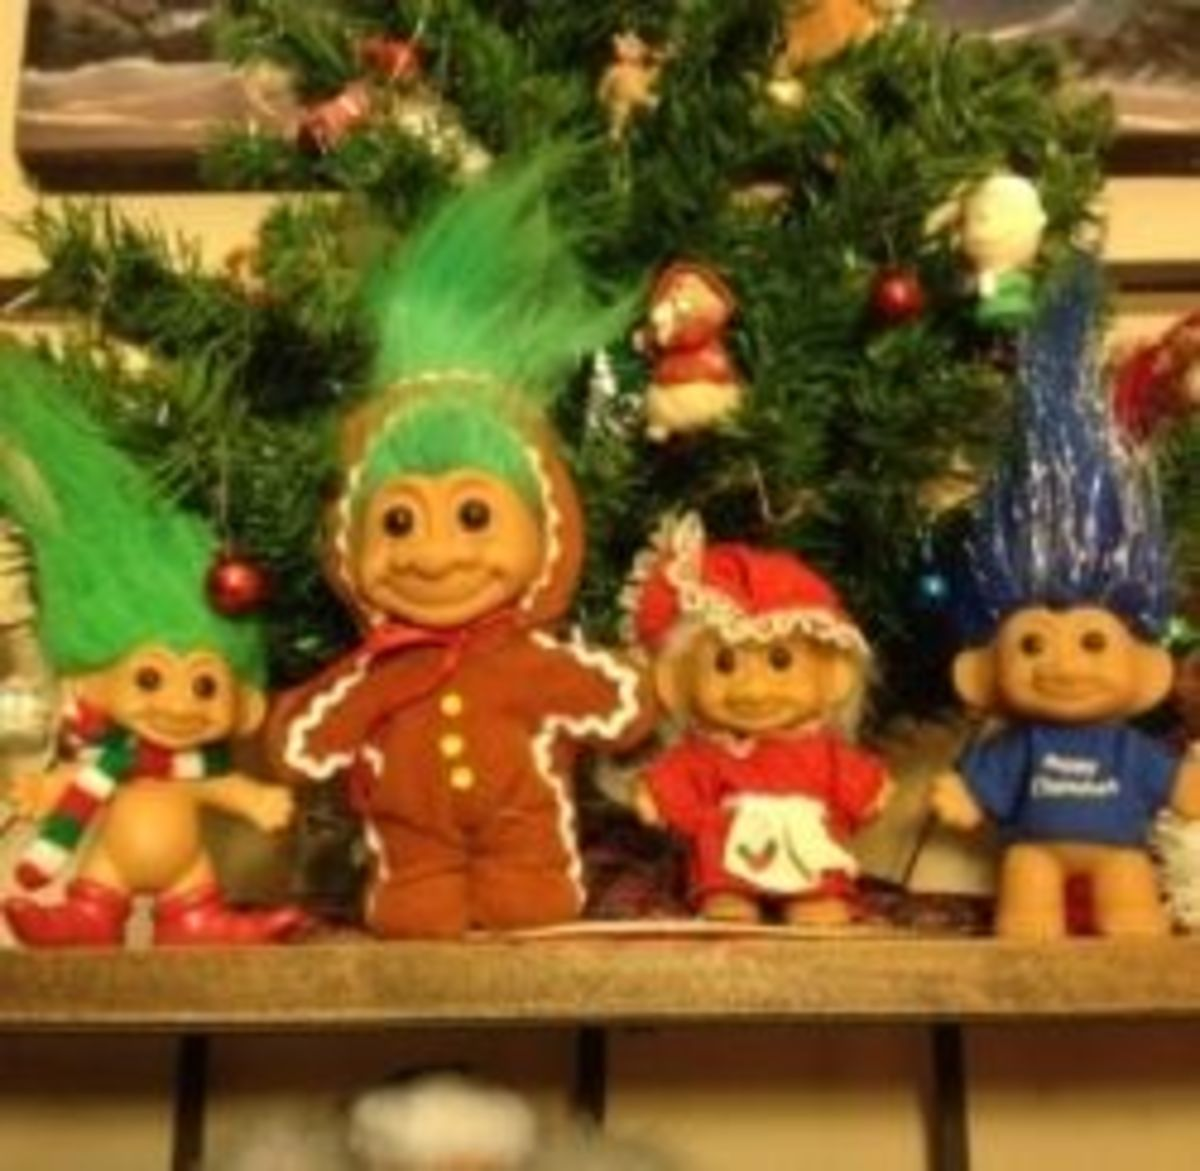 The Troll Doll - A Classic Childhood Toy